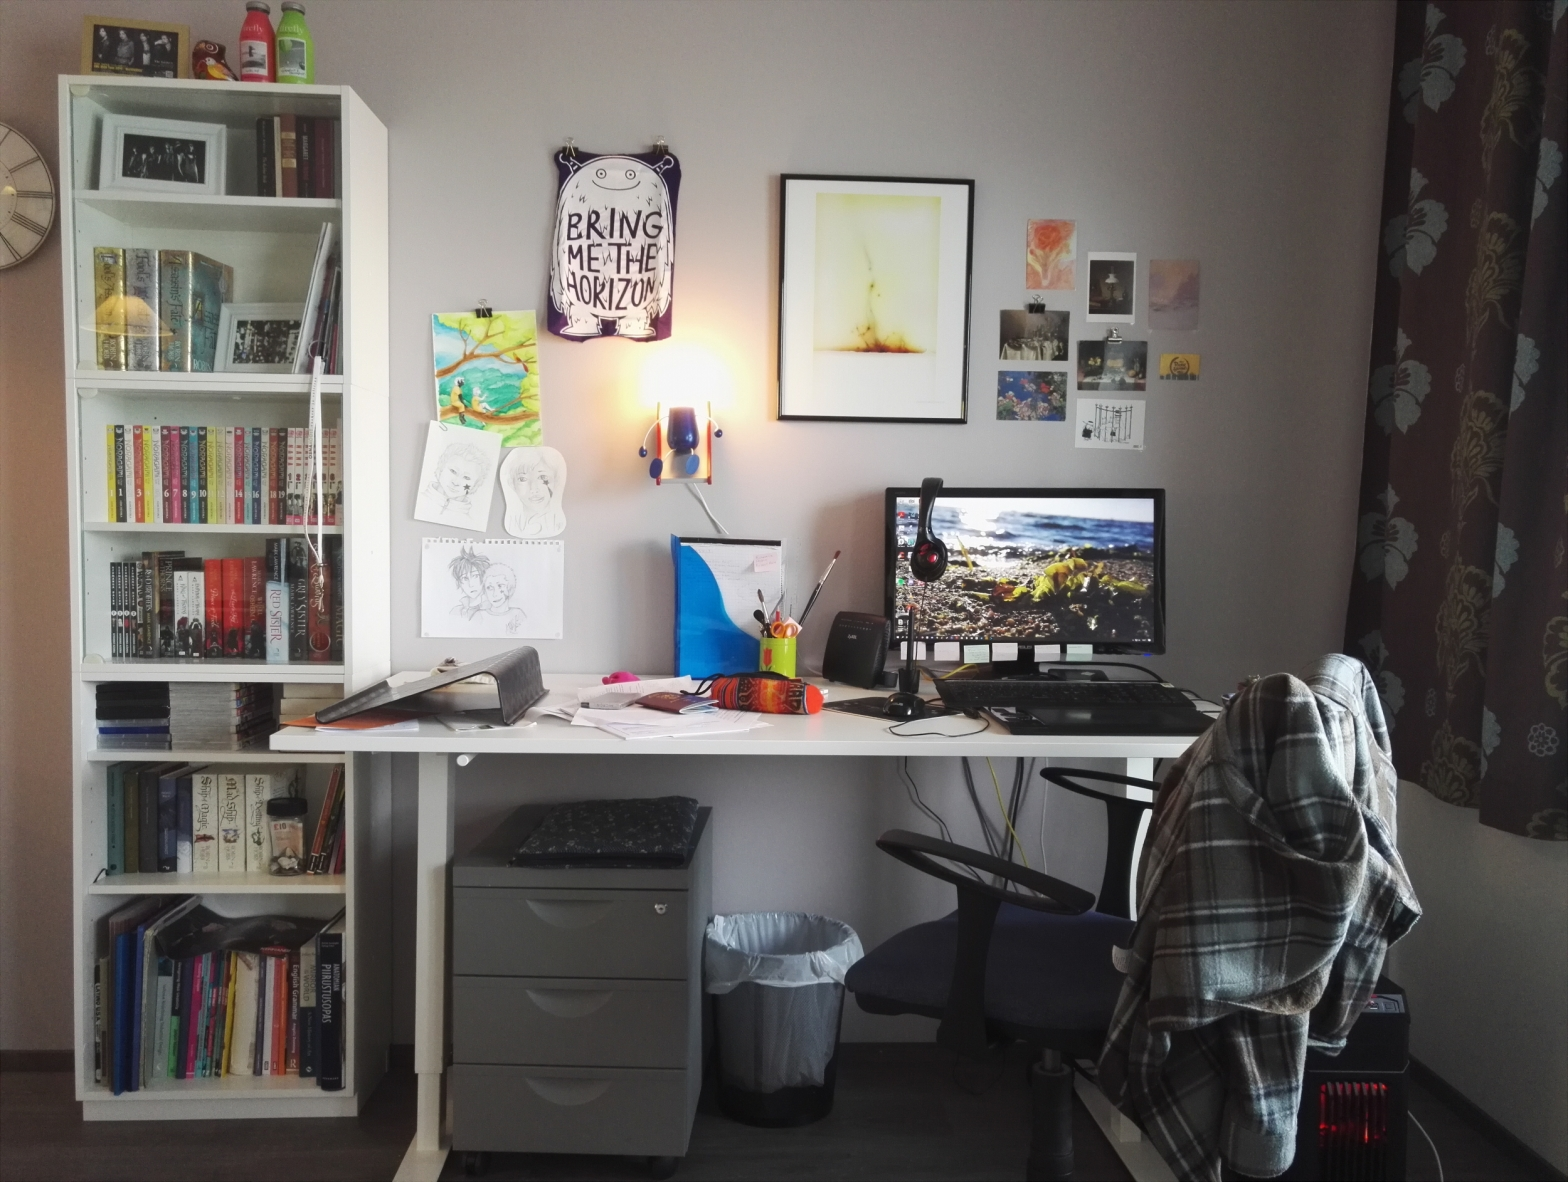 A photo of my working space. My desk in the centre, a narrow bookshelf to the left, postcards and other art on the wall.